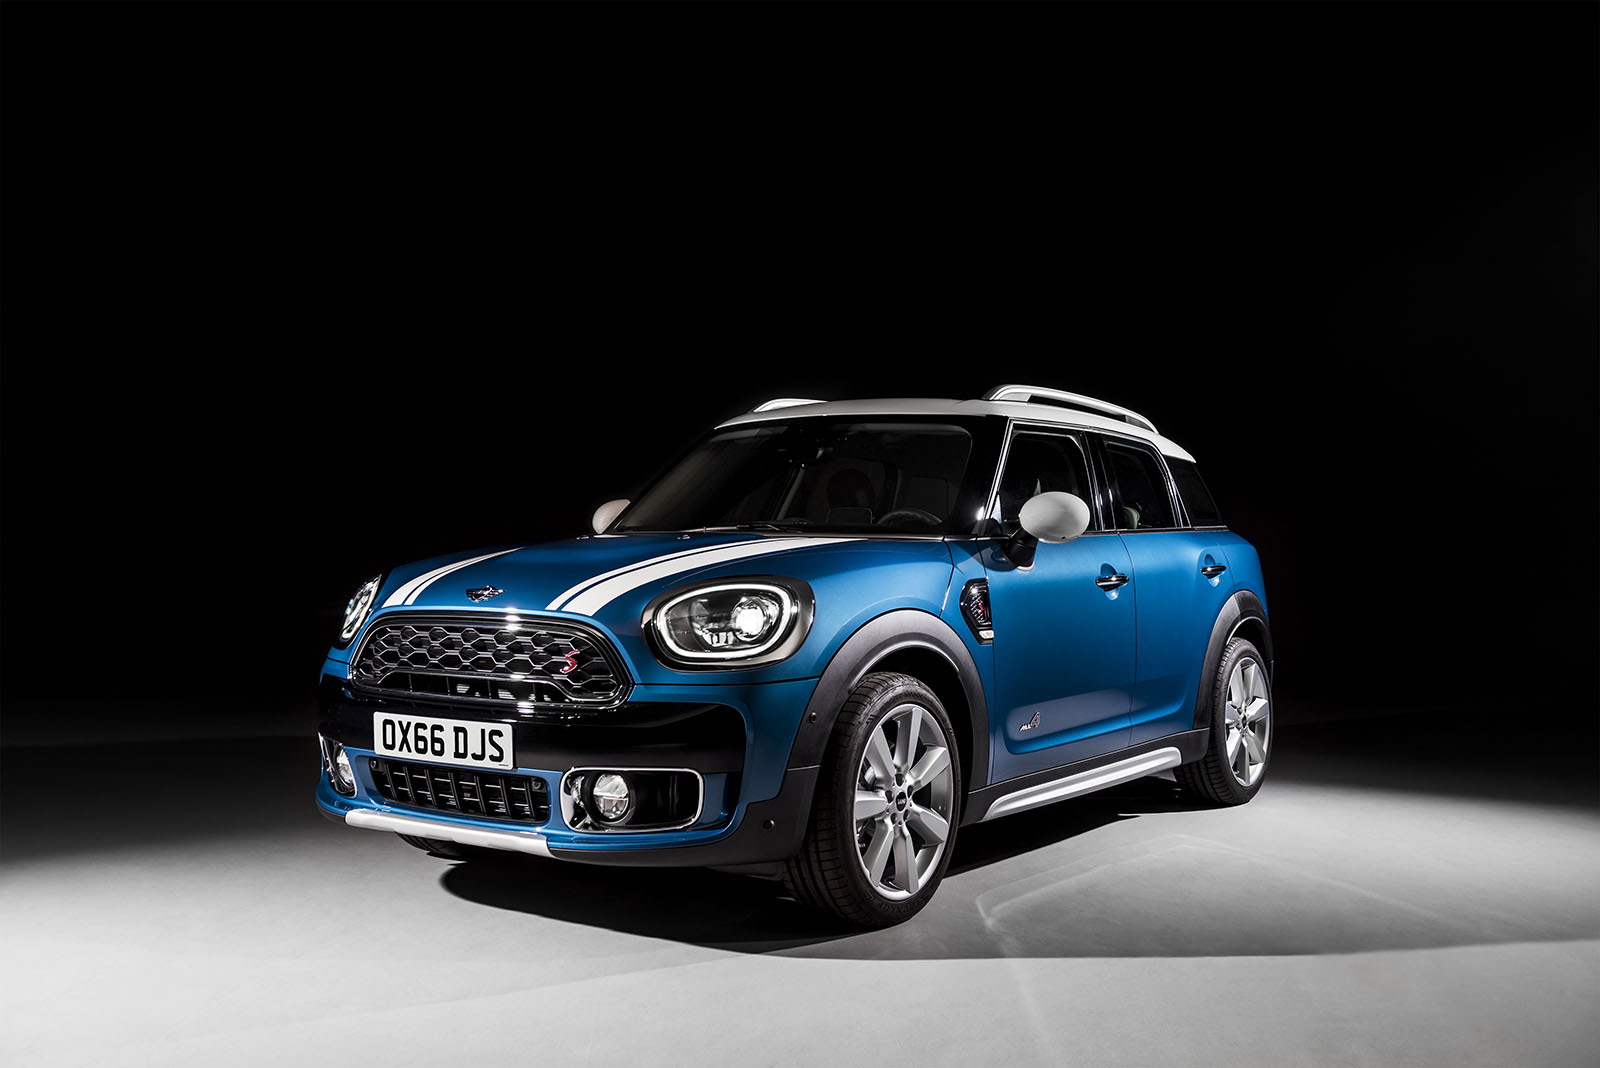 mini countryman us pricing and configurator launch motoringfile. Black Bedroom Furniture Sets. Home Design Ideas